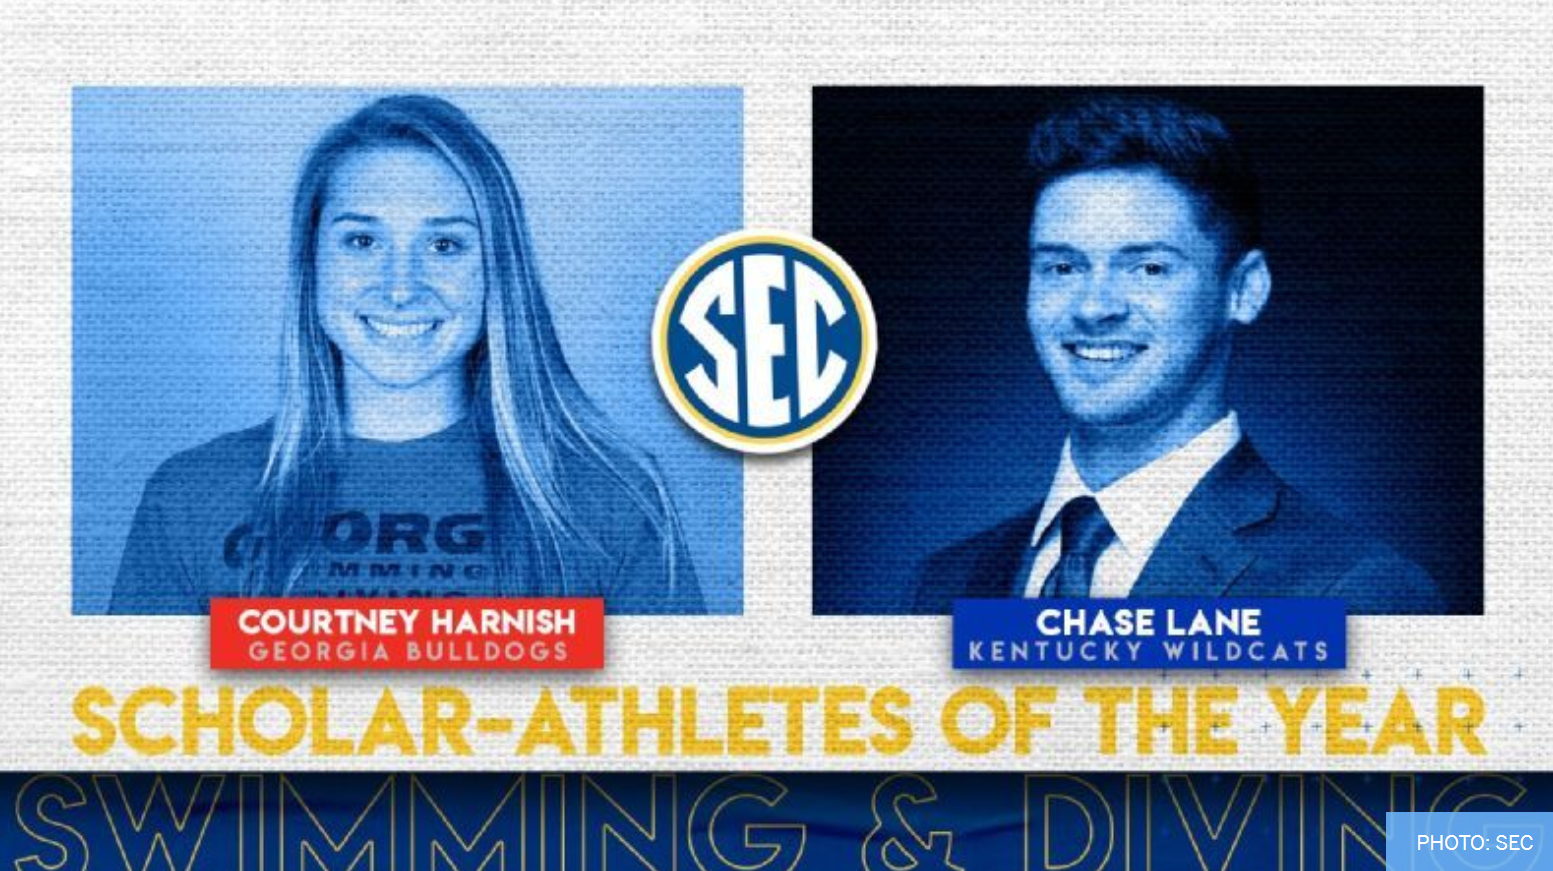 2021 SEC Swimming & Diving Scholar-Athletes of the Year